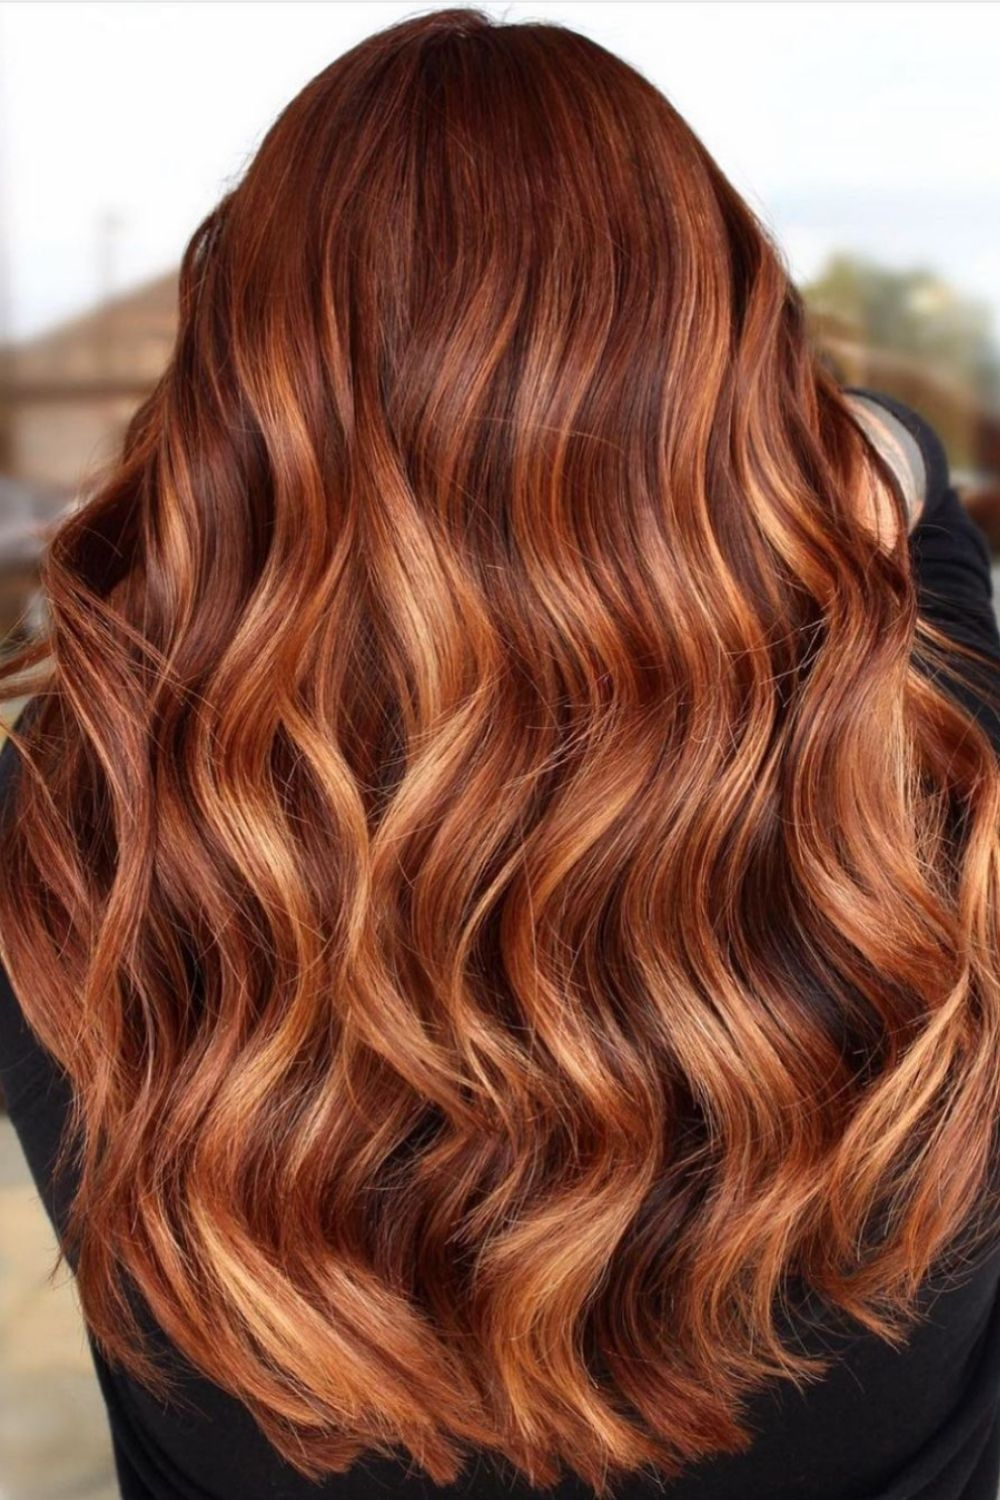 38 Trendy Copper hair color for Autumn hair color trends 2021